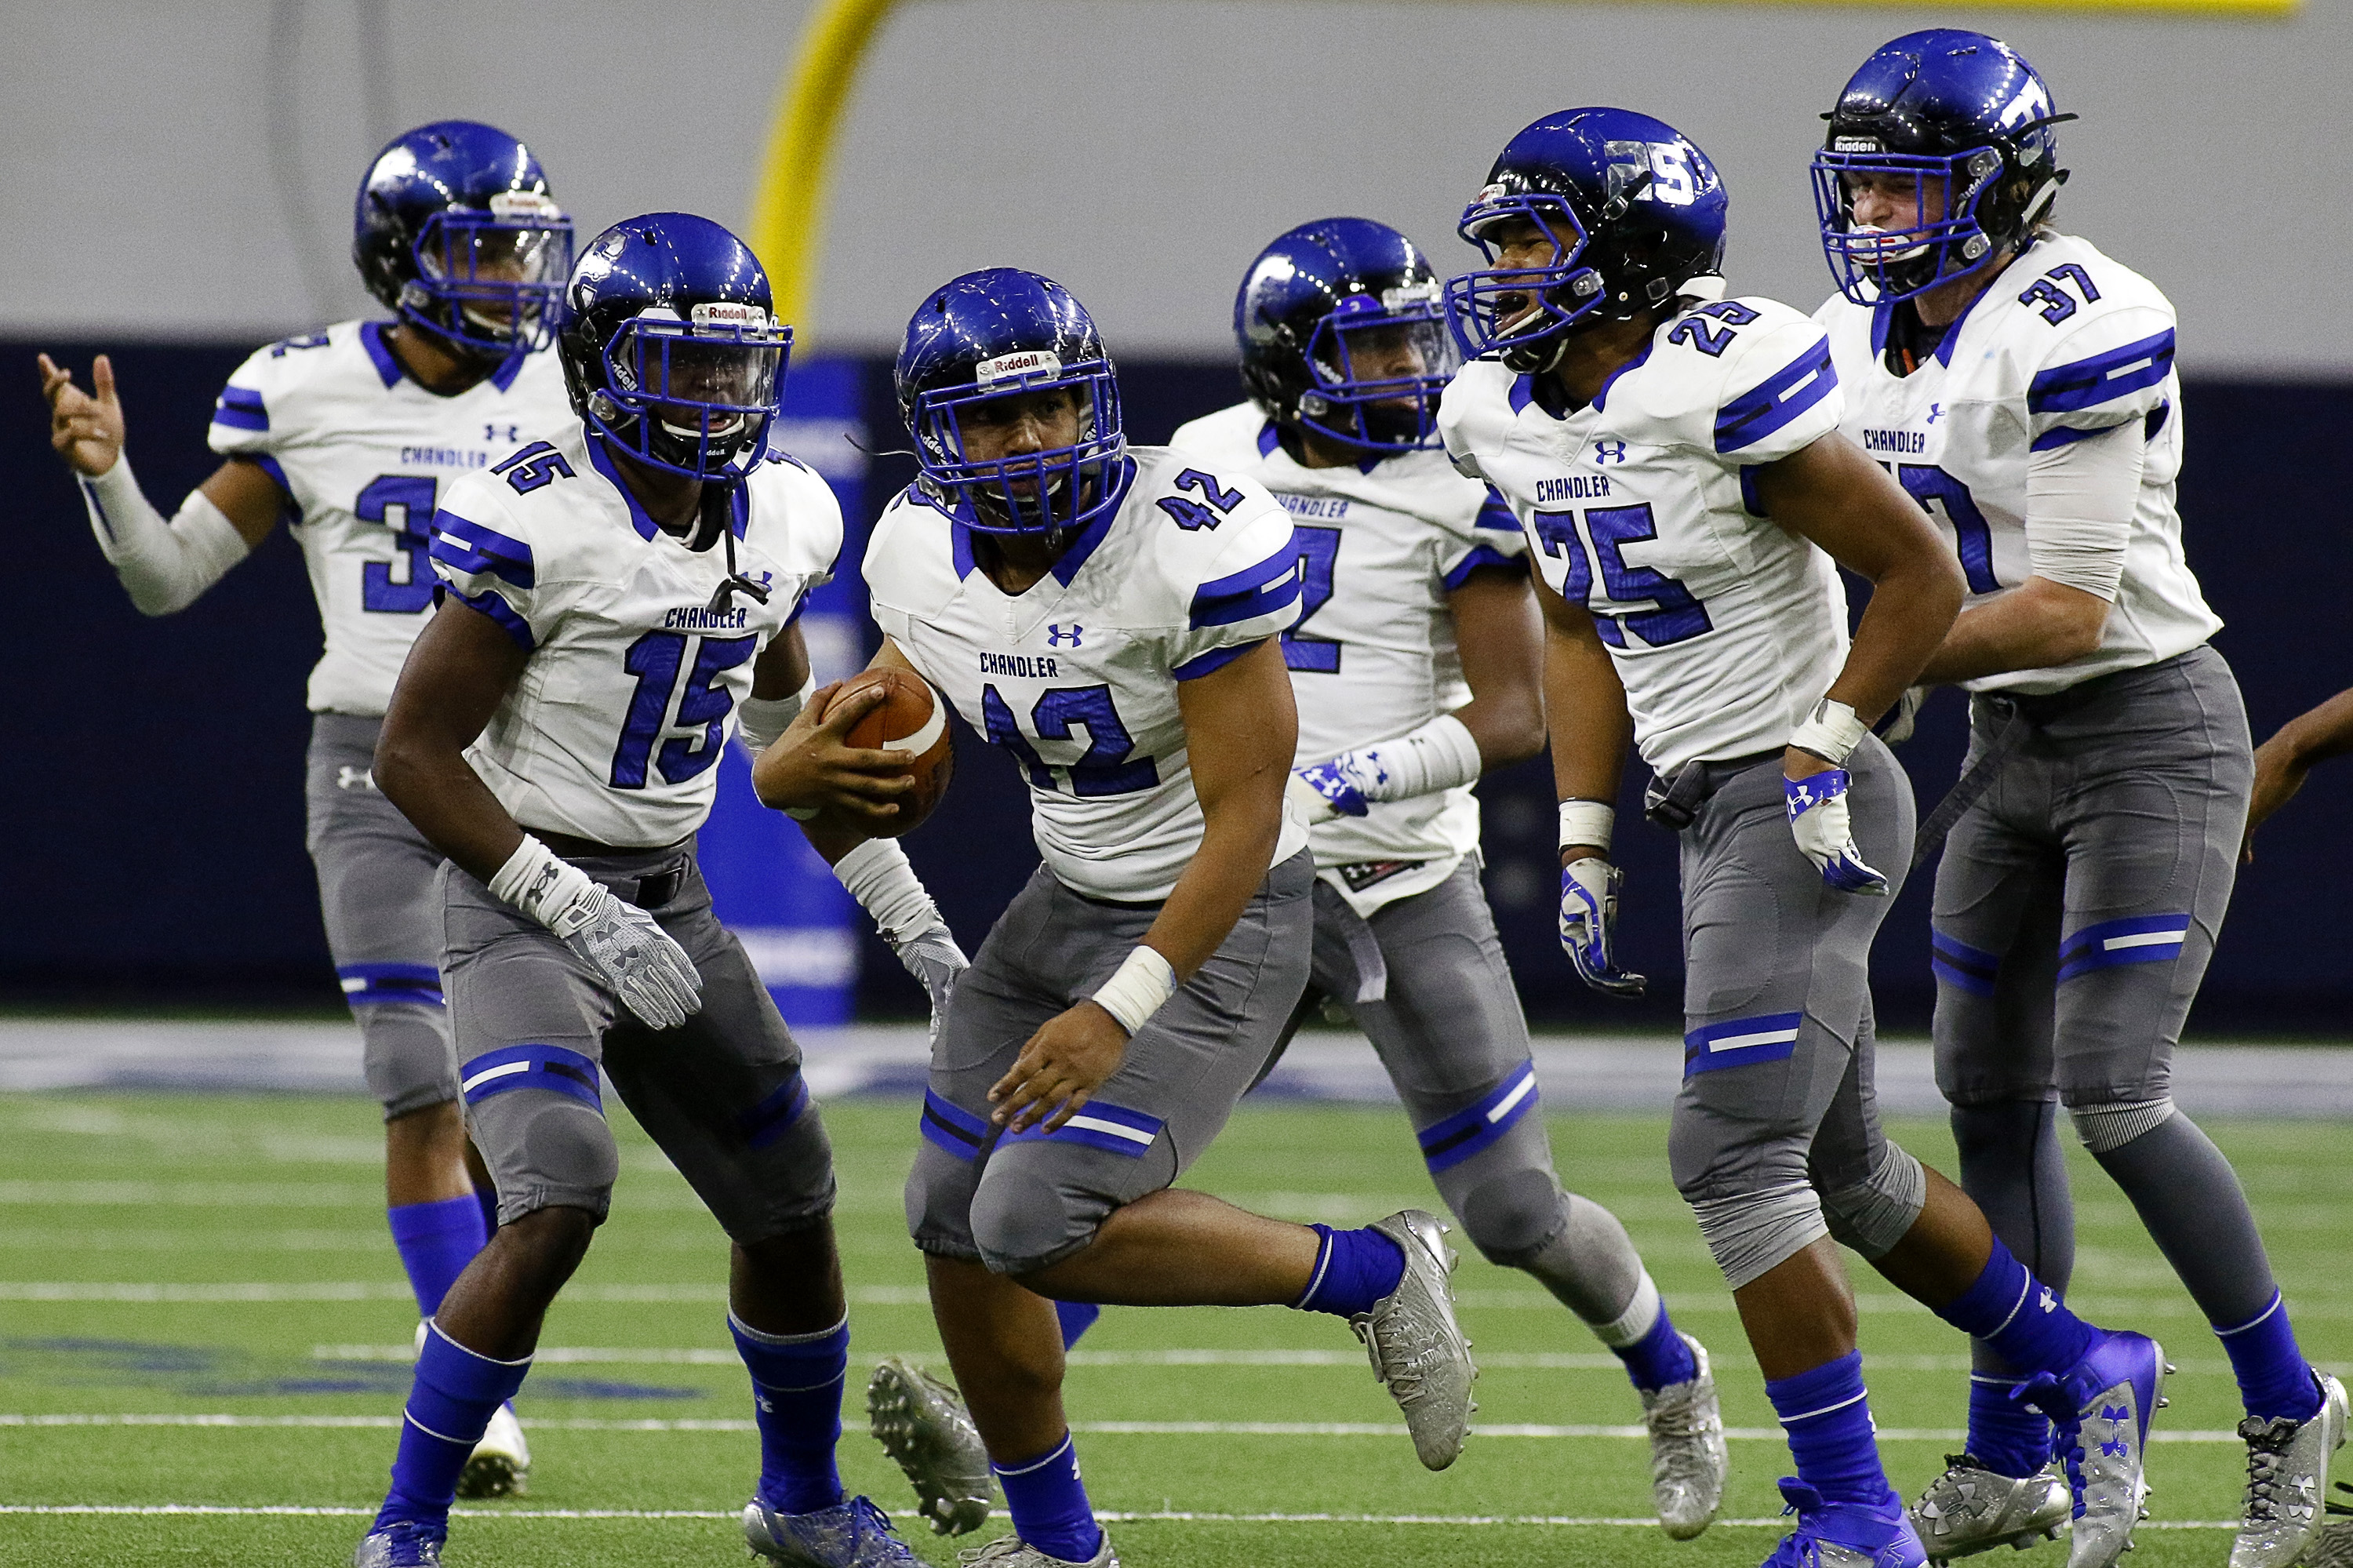 Dec 23, 2016 -- Frisco, TX, U.S.A -- GEICO State Champions Bowl Series. -- Chandler Wolves Savion Sow (42) celebrates his interception against the Valdosta Wildcats during the second half. Chandler won 44-24. Photo by Ray Carlin-USA TODAY Sports Images, Gannett ORG XMIT: US 135851 GEICO preps 12/23/201 [Via MerlinFTP Drop]